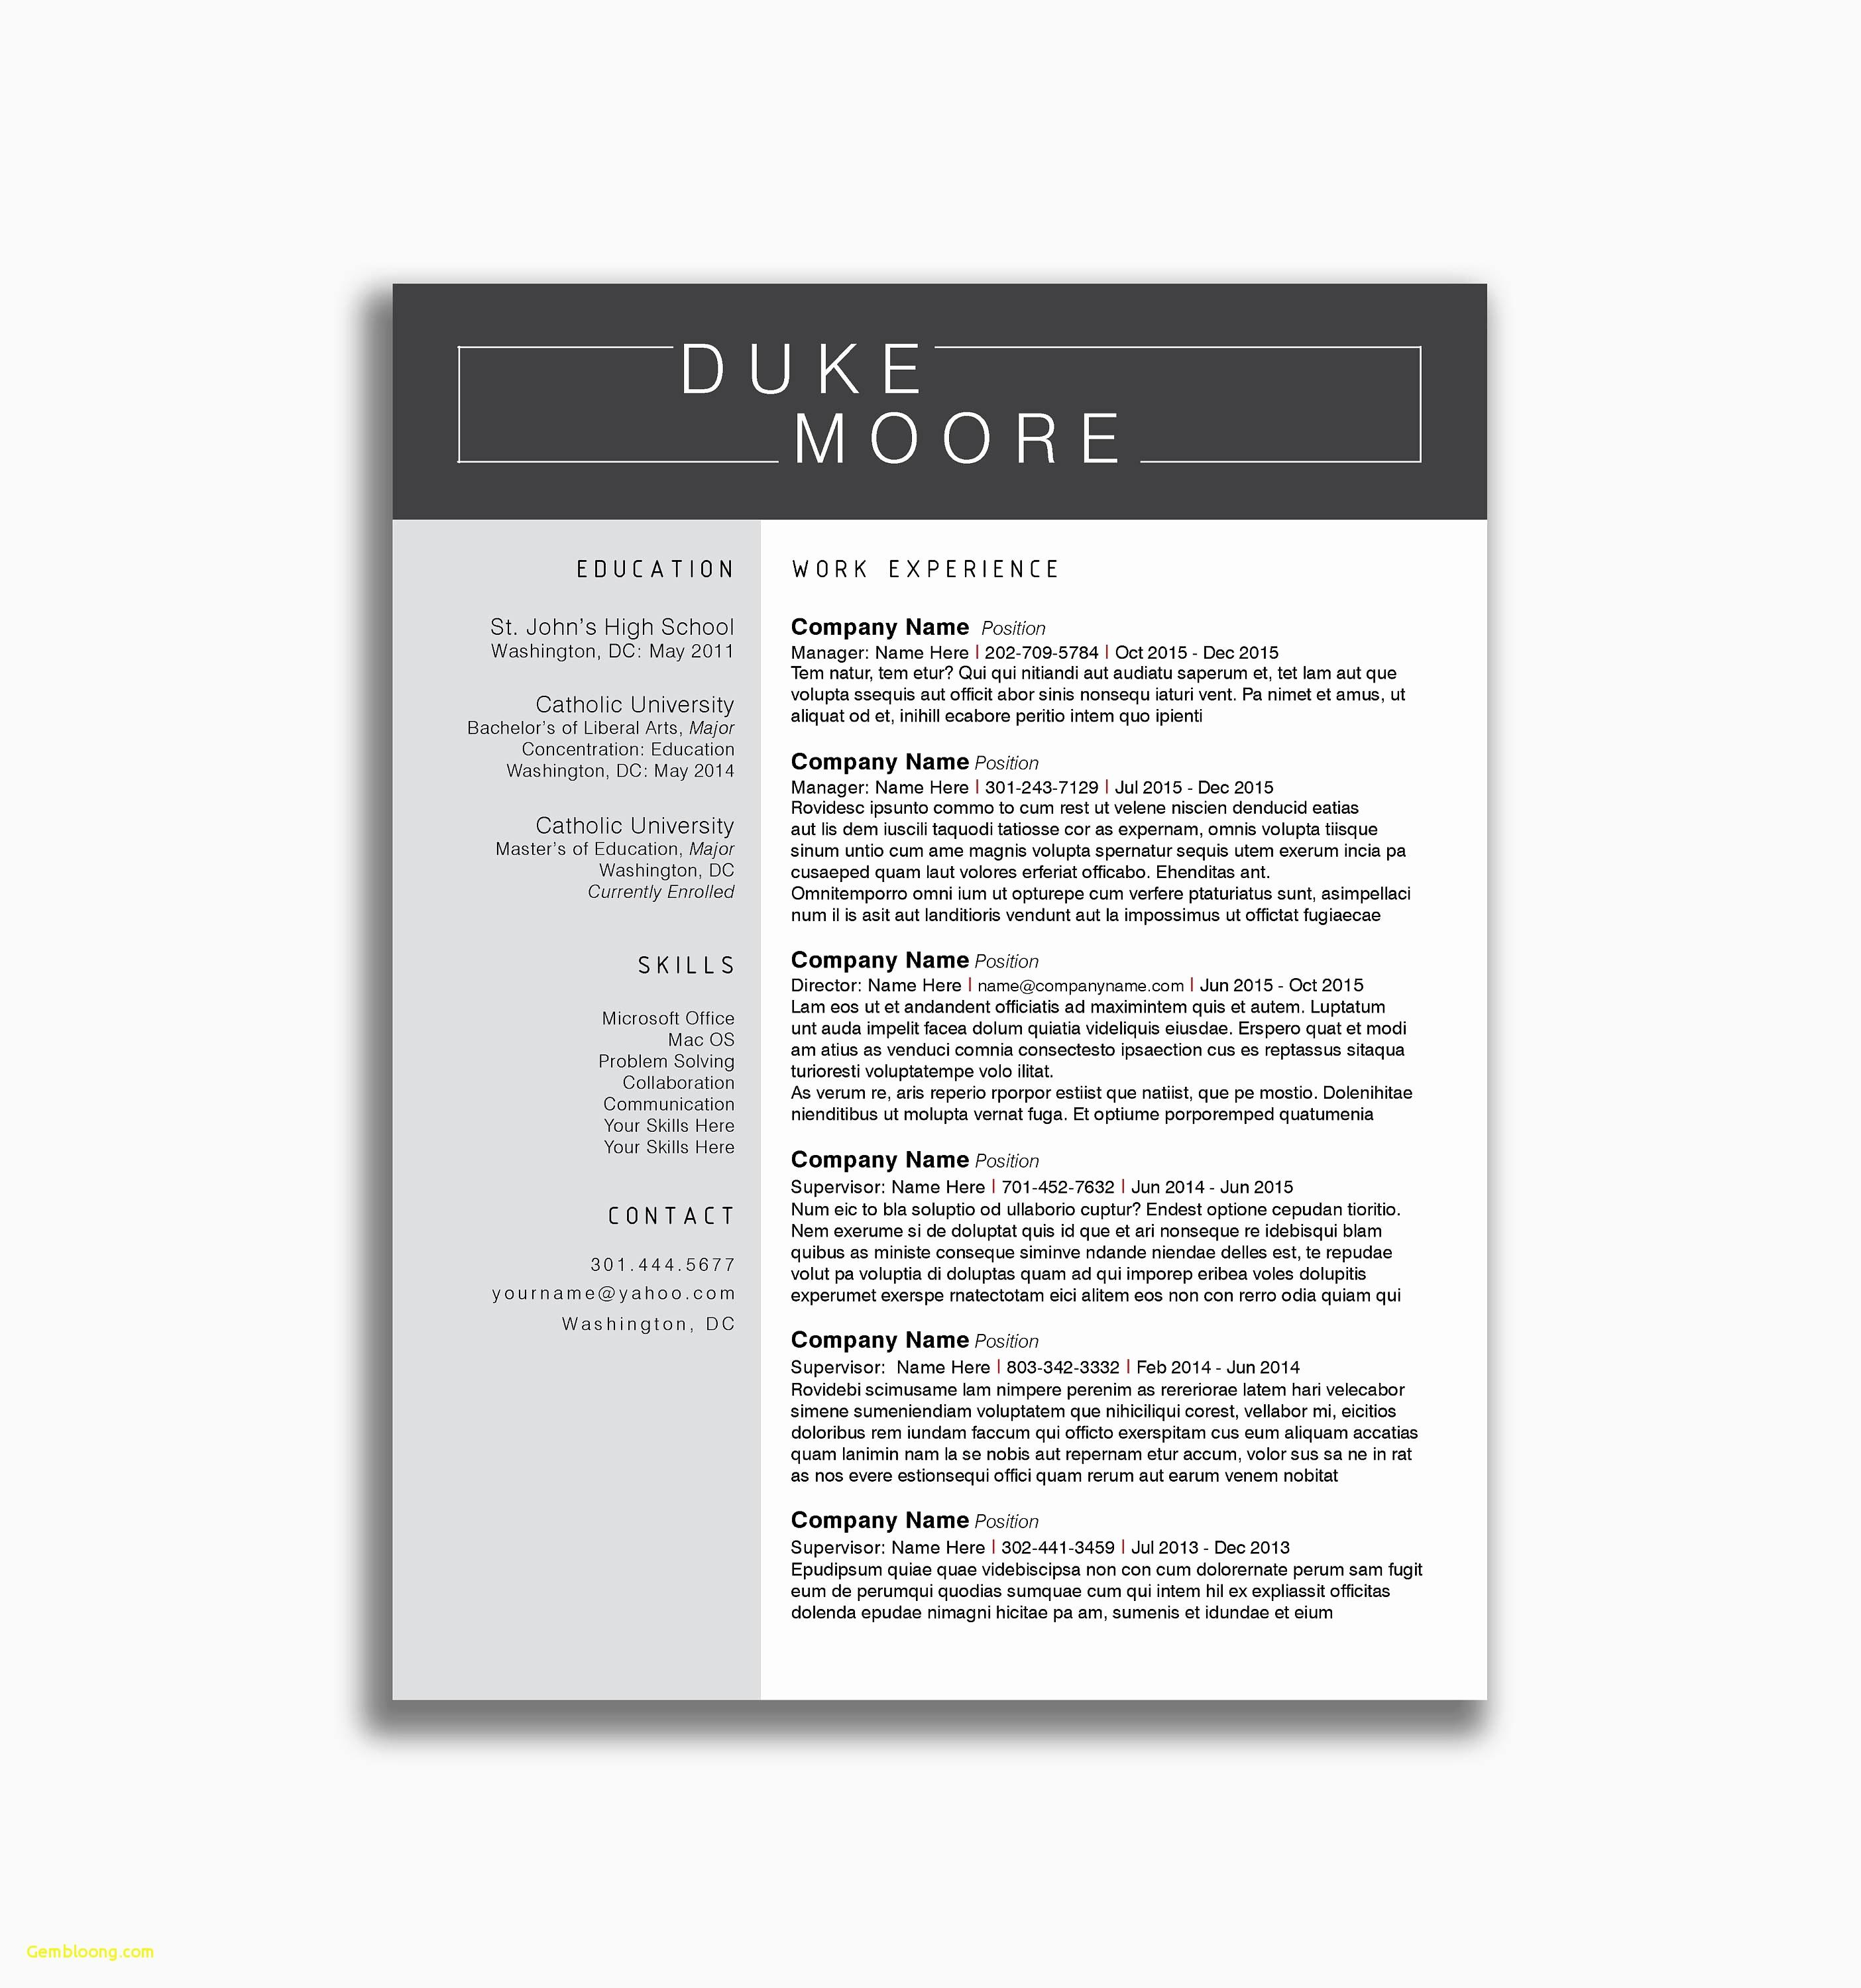 Examples Of Supervisor Resumes - Download Resume Template Beautiful Law Student Resume Template Best